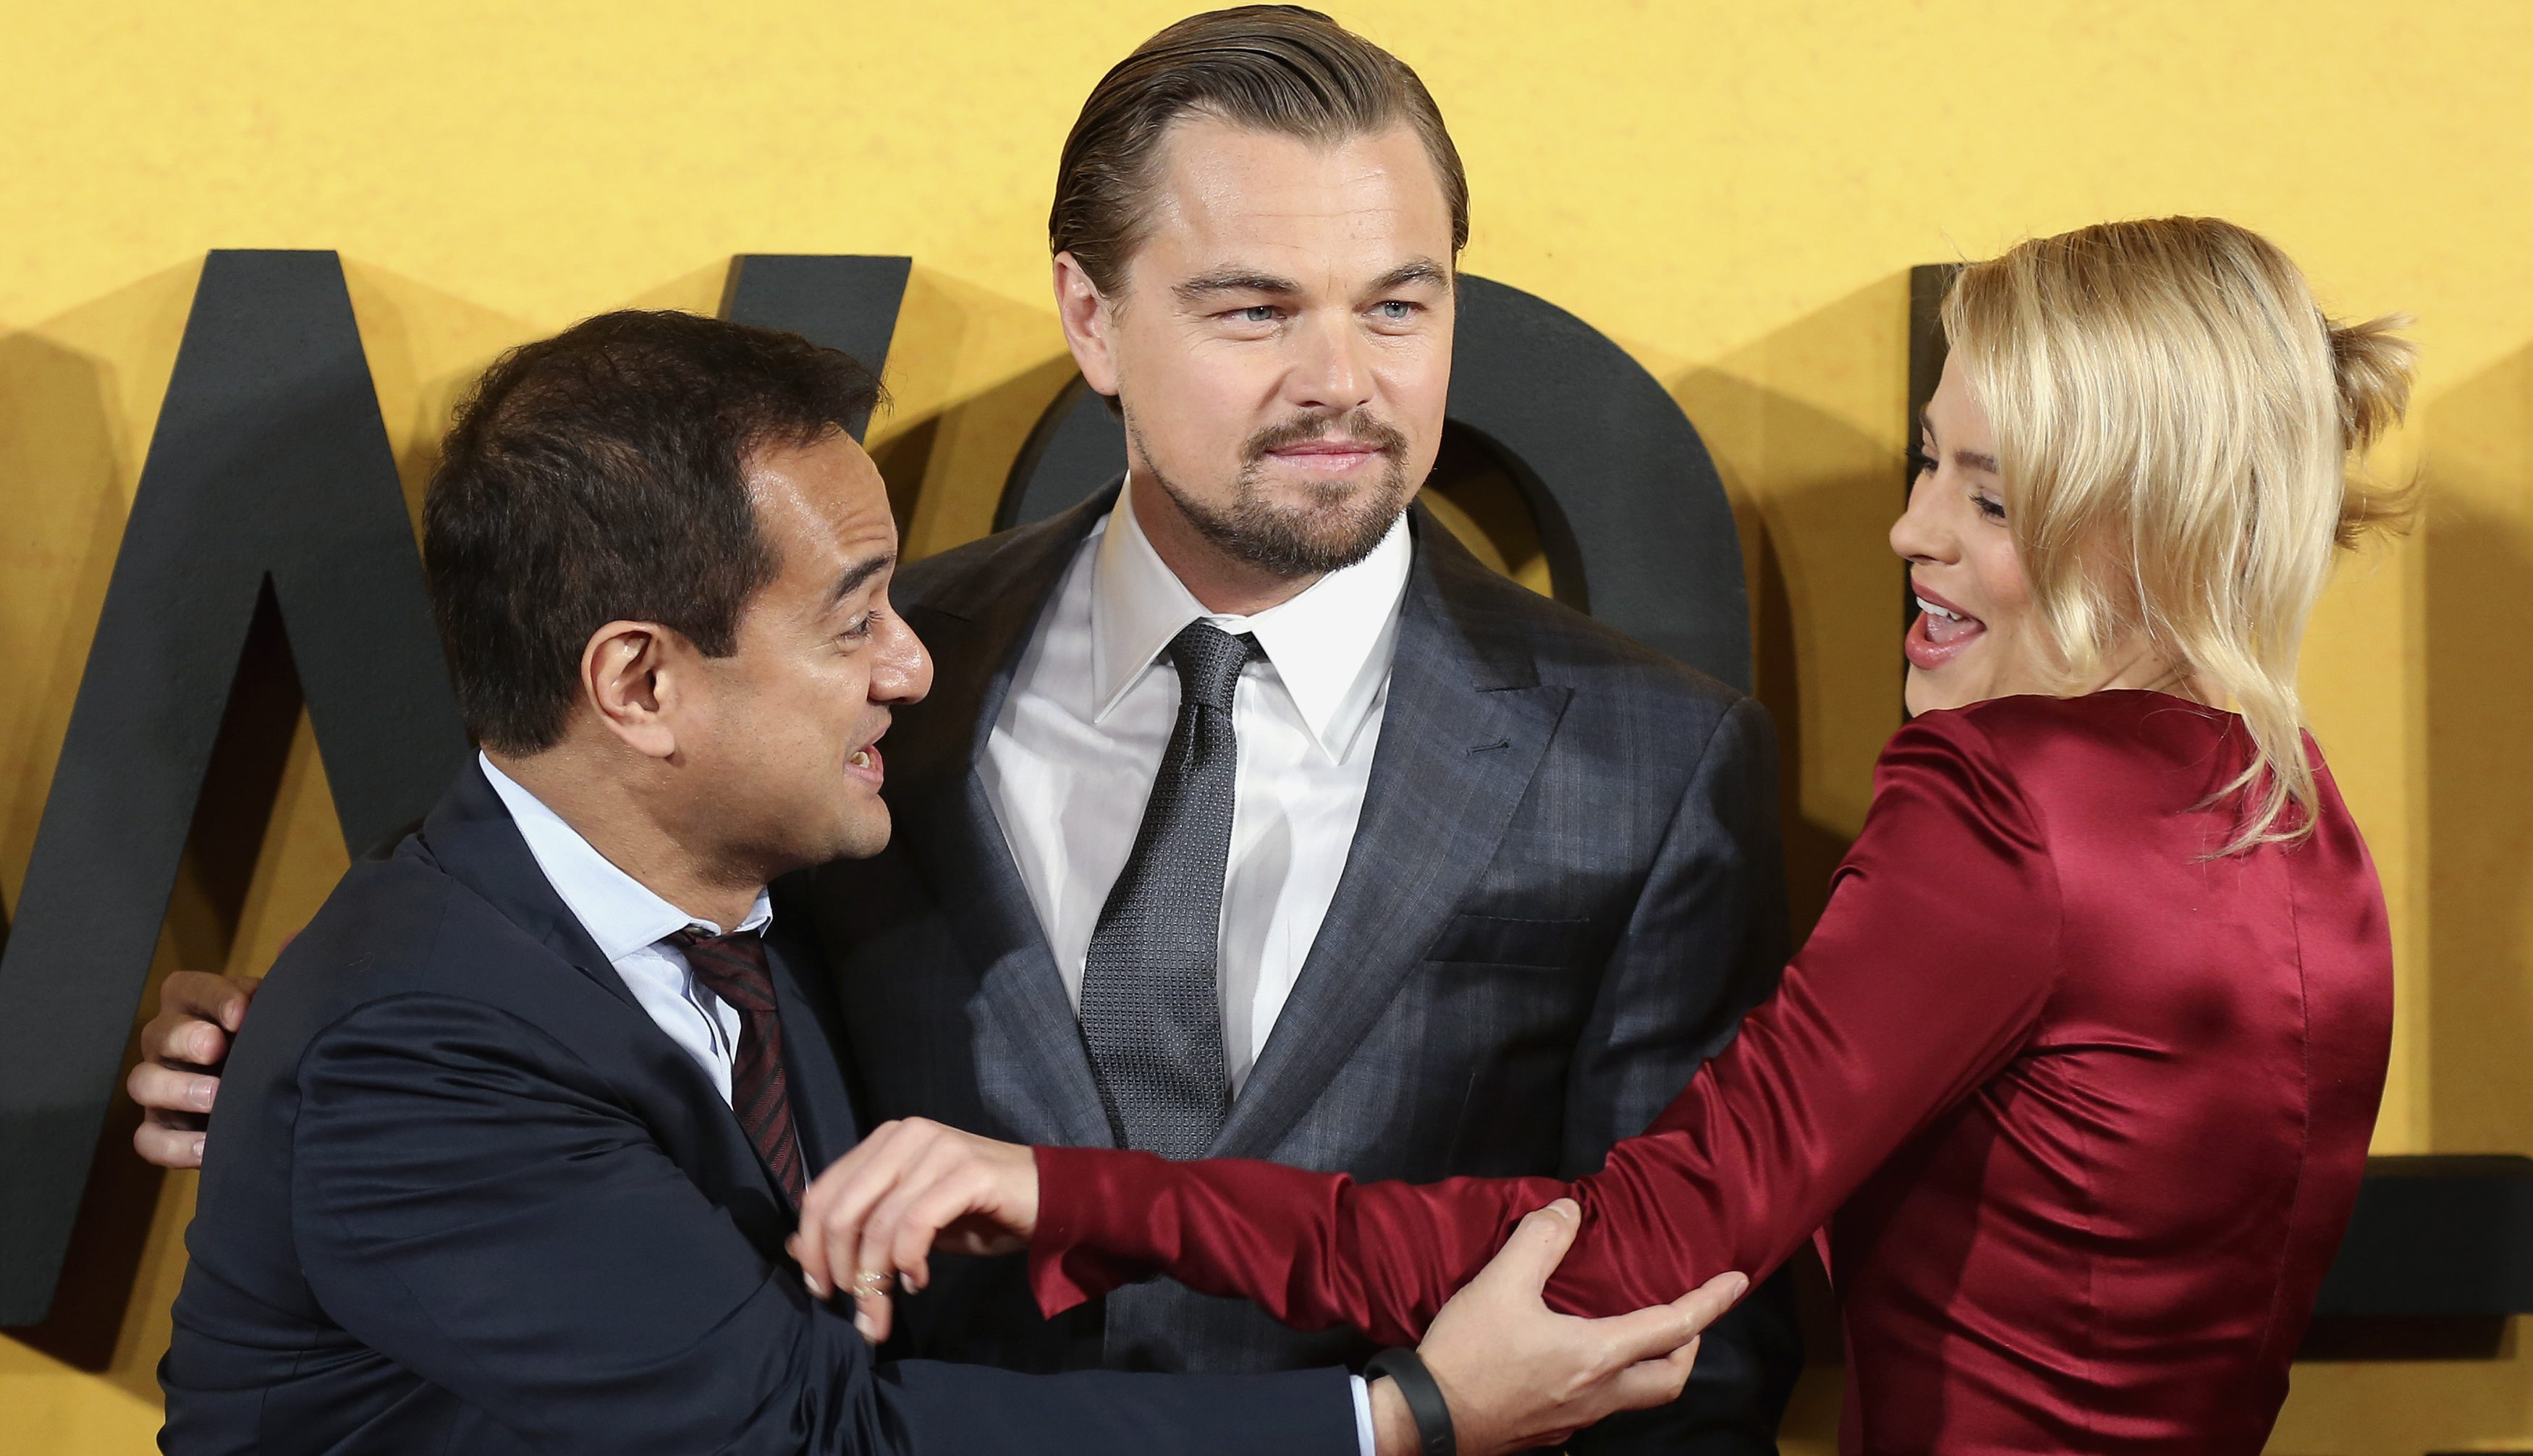 Producer Riza Aziz and cast members Leonardo DiCaprio and Margot Robbie arrive for U.K. Premiere of The Wolf of Wall Street in London